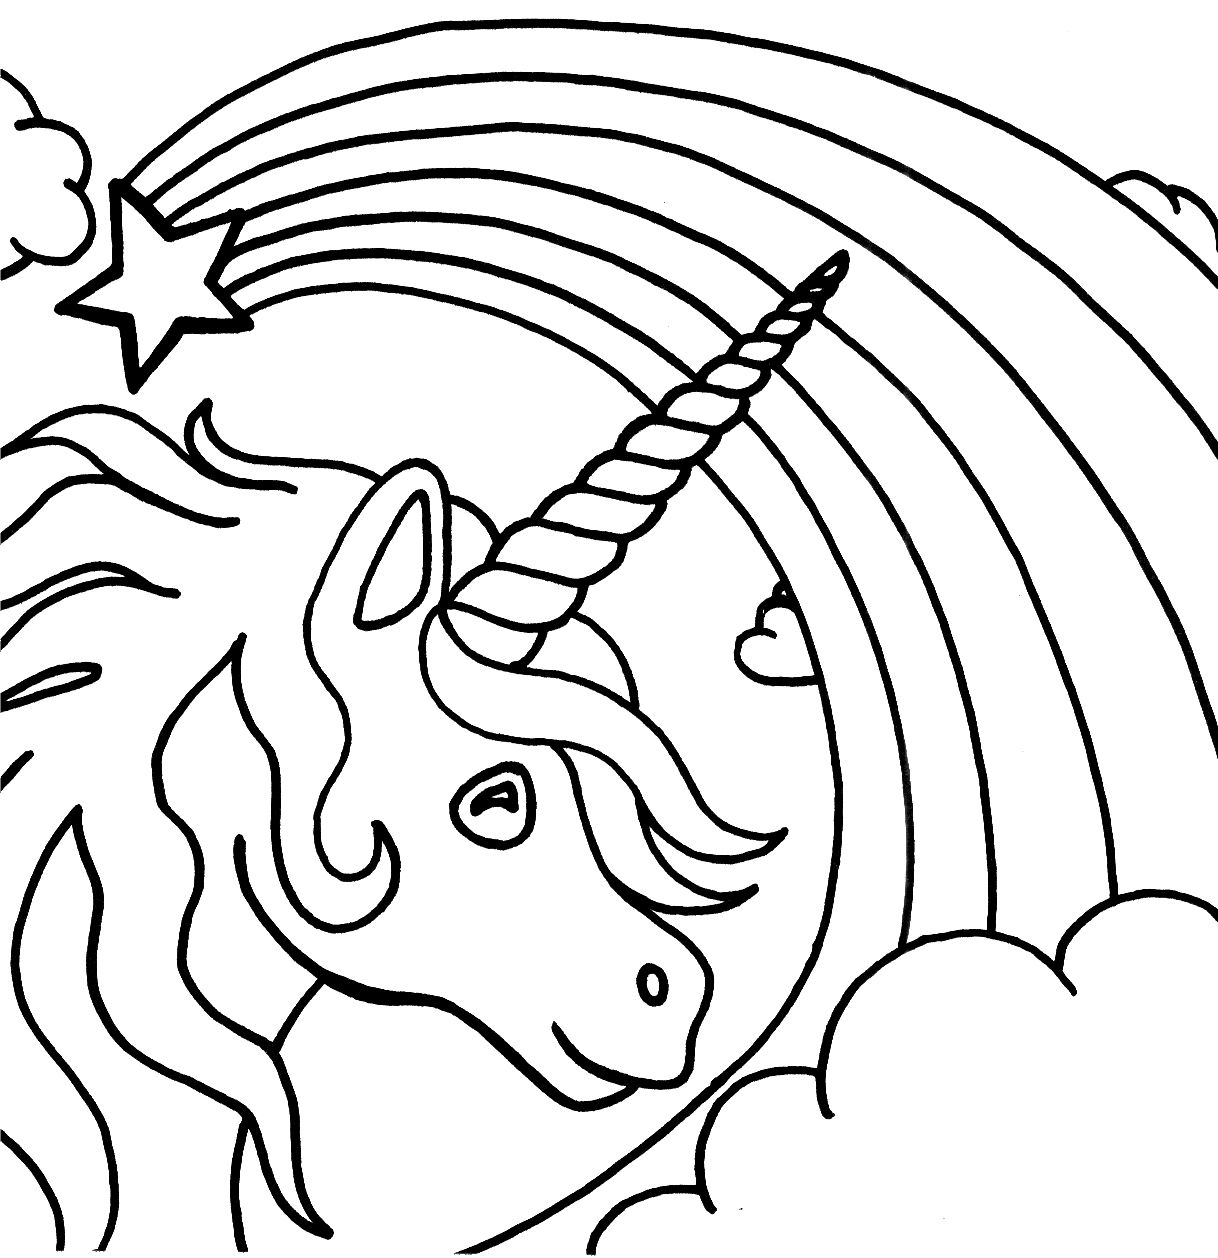 kids coloring pages 8 coloring pages kids wemakesense co